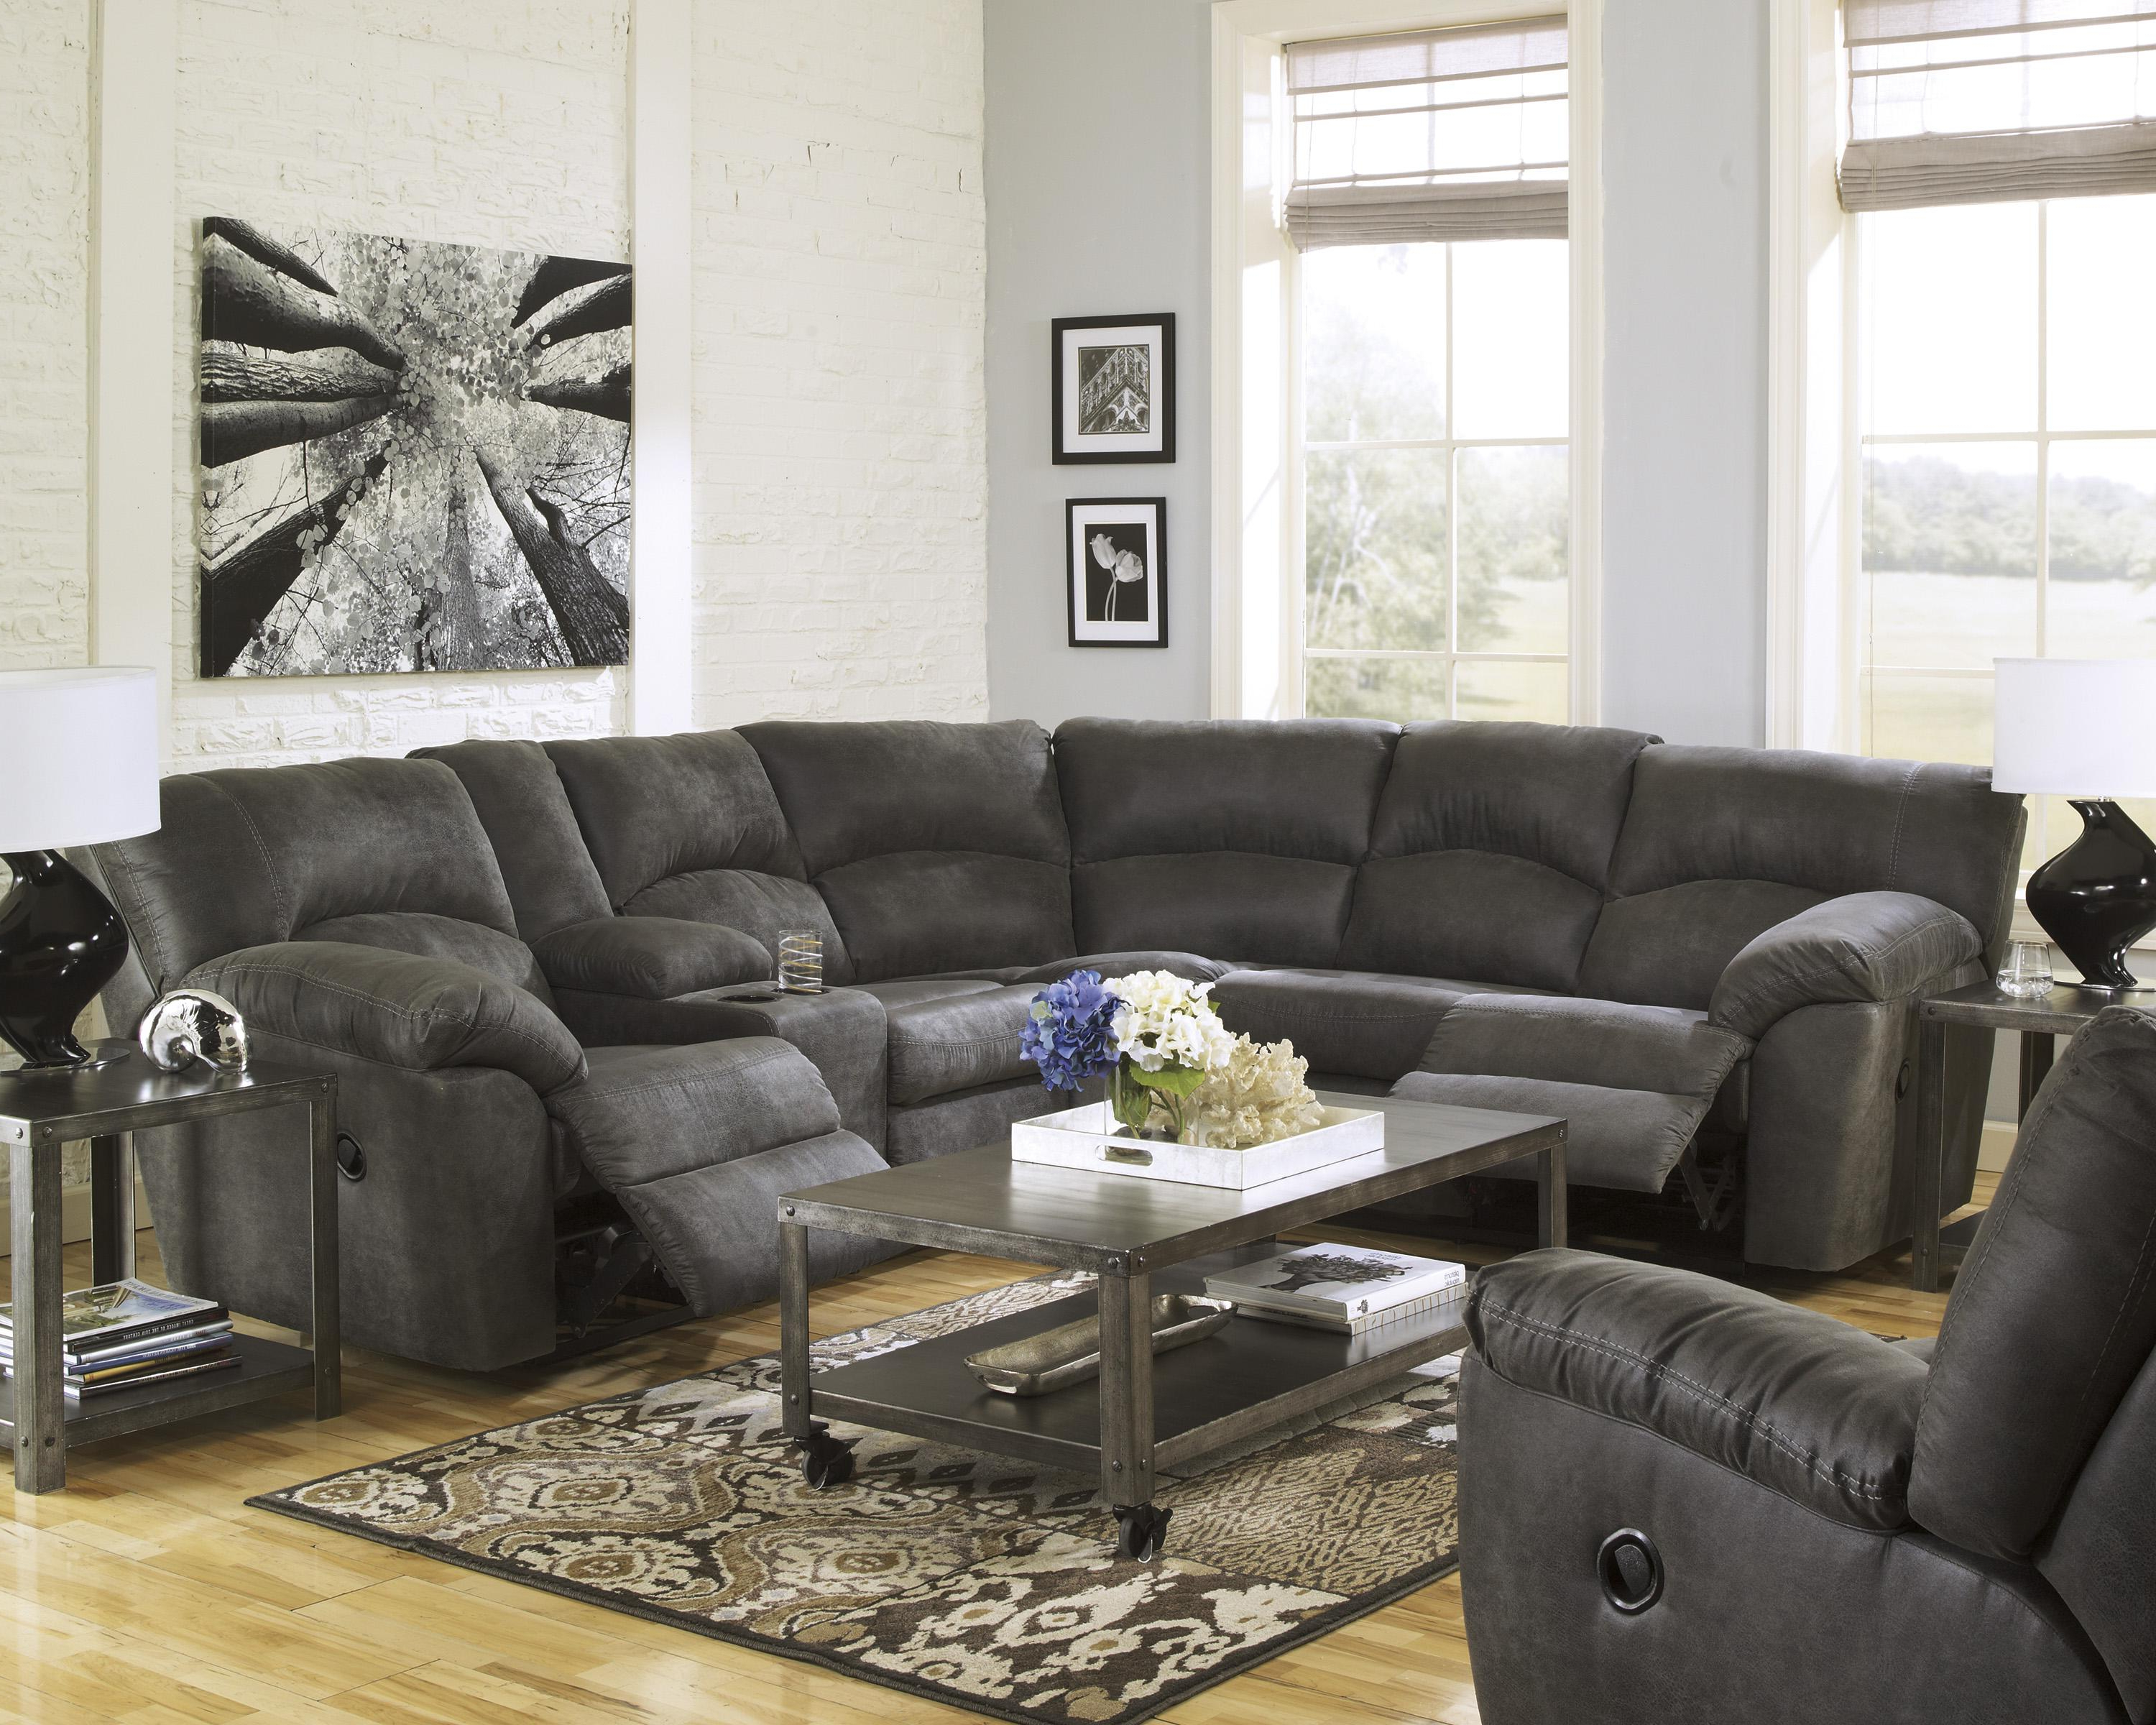 Trendy Denali Light Grey 6 Piece Reclining Sectionals With 2 Power Headrests Pertaining To Sectional Reclining Sofa – Locsbyhelenelorasa (View 19 of 20)